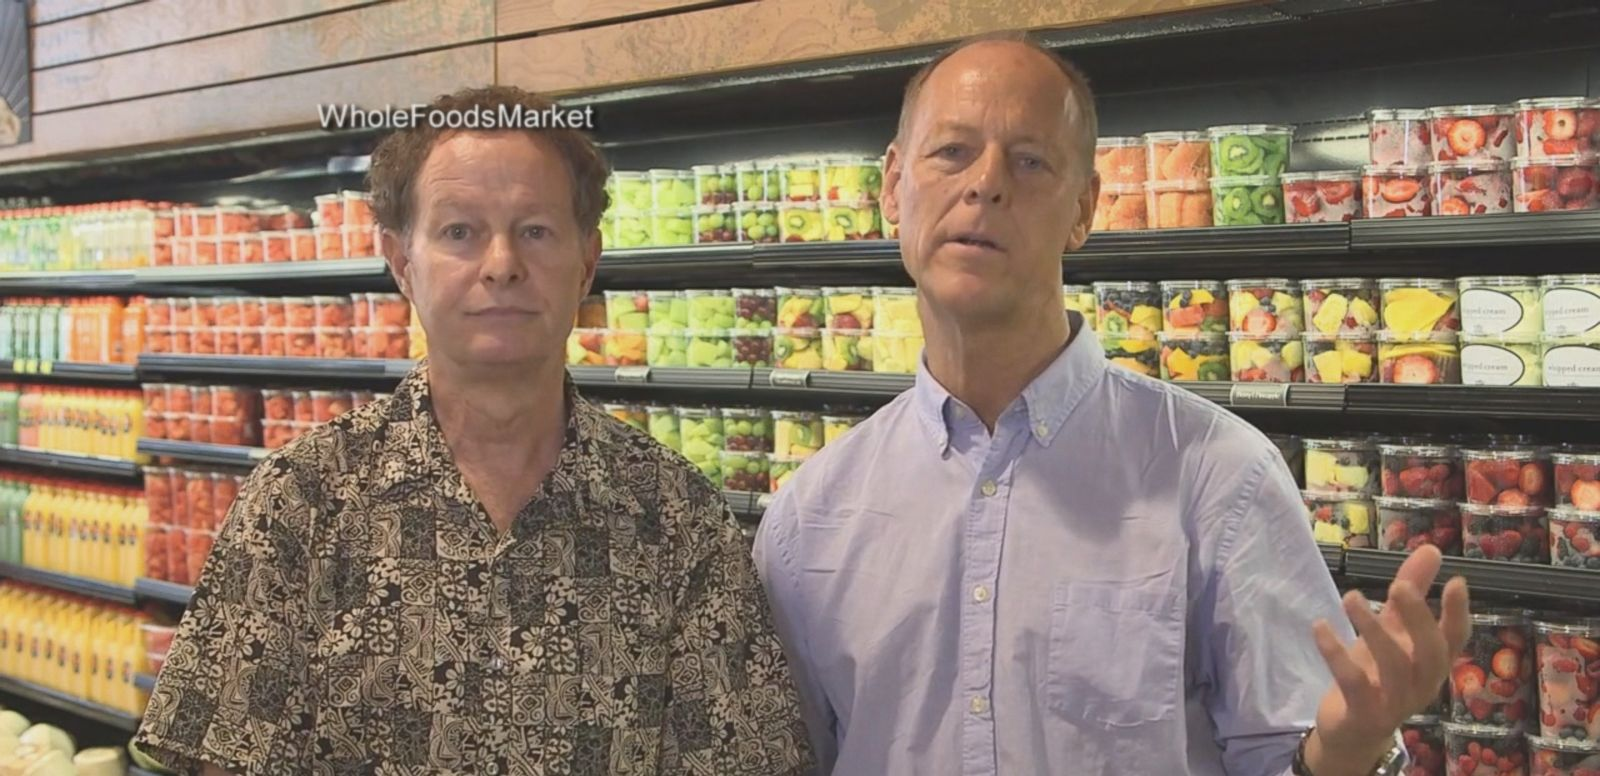 VIDEO: Whole Foods CEOs Apologize for Overcharging